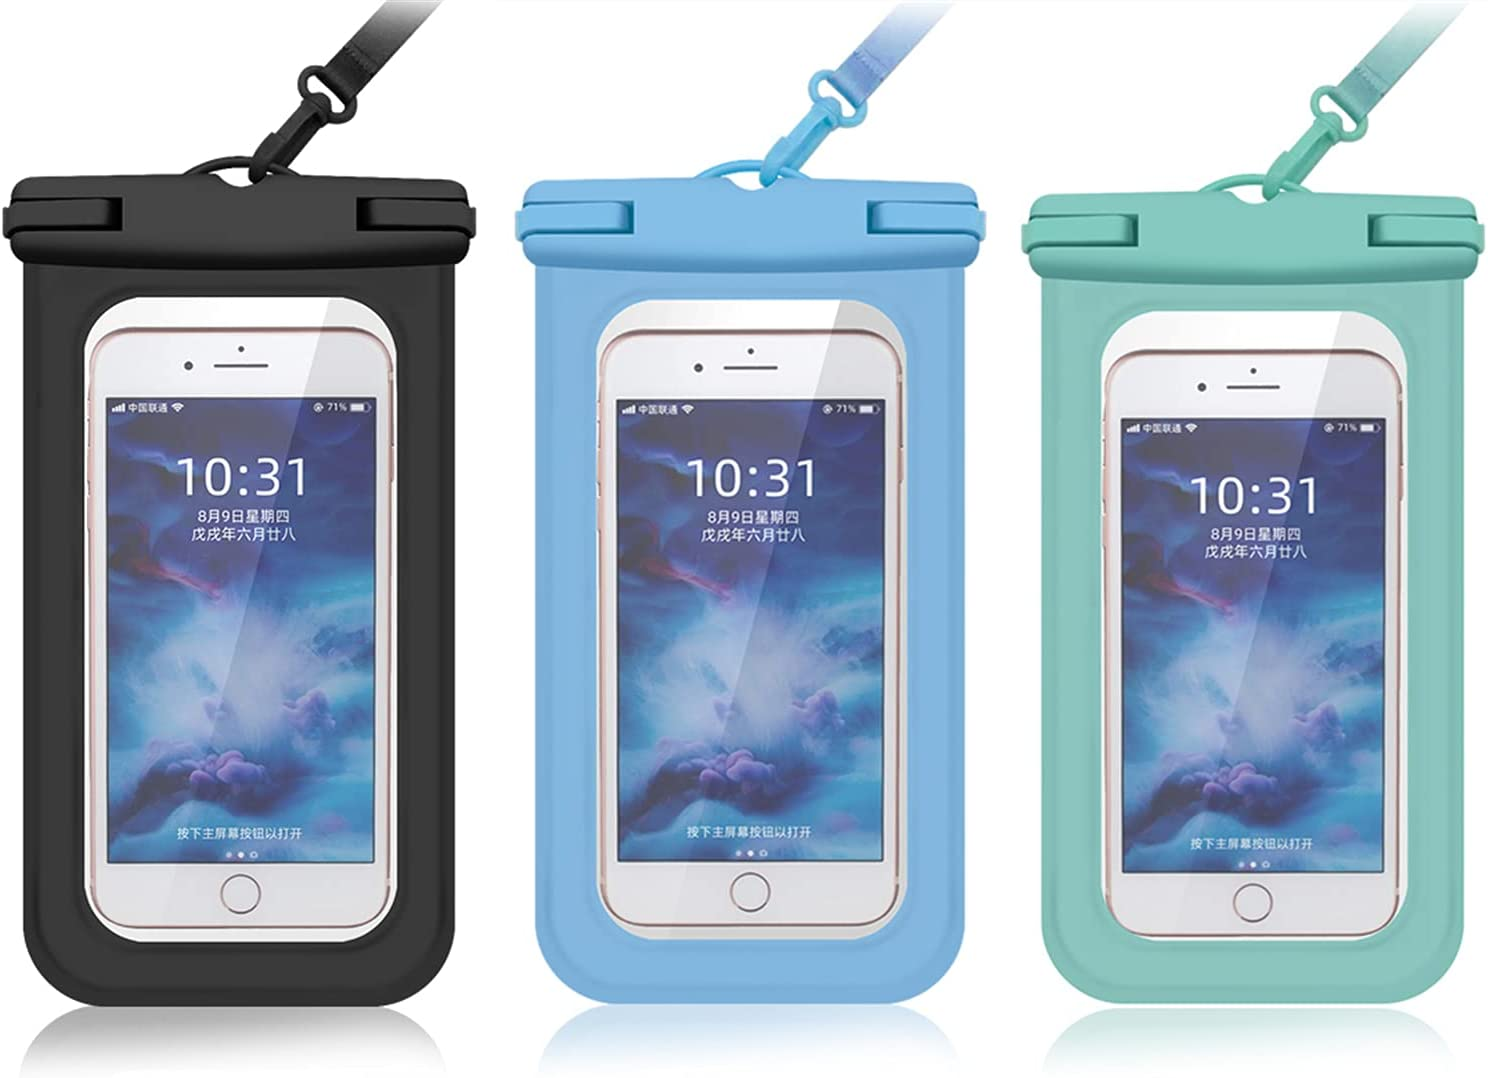 Sanpeng Universal Waterproof Phone Case Pouch, 3 Pack Both Sides Clear Dry Bag, 6.8 Inch Waterproof Phone Pouch, Compatible with iPhone 12/11 Pro/Max/XS Max/XR/X, Galaxy S21/20/Note 20/10 up to 6.8